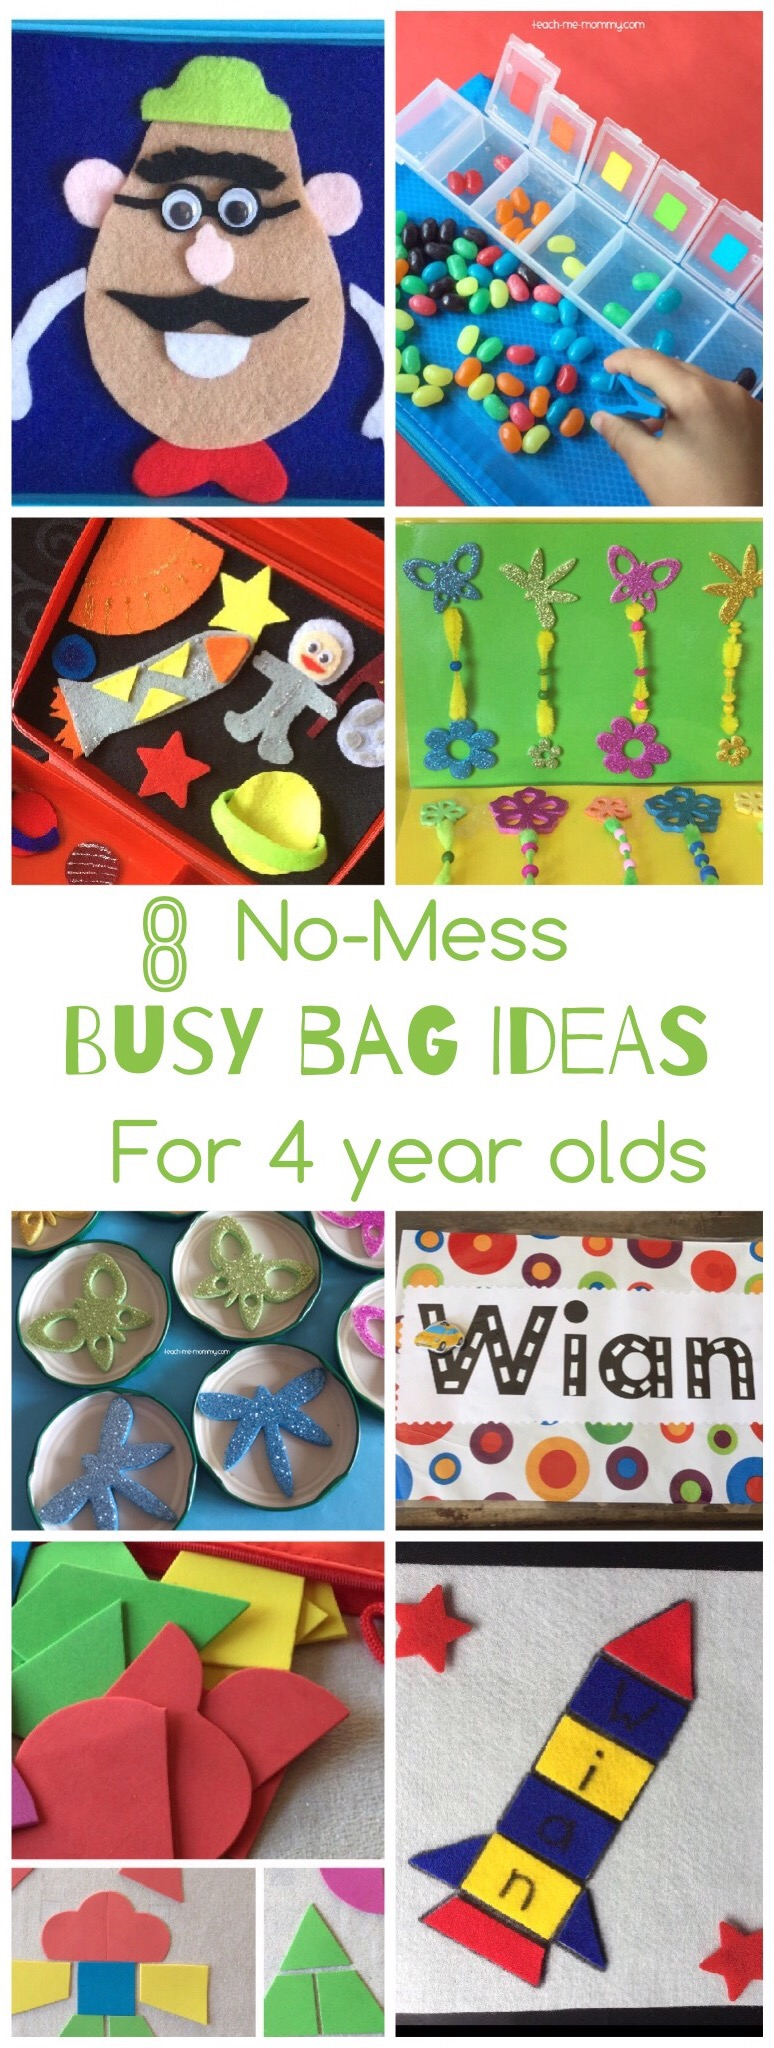 No Mess Busy Bag Ideas For 4 Year Olds